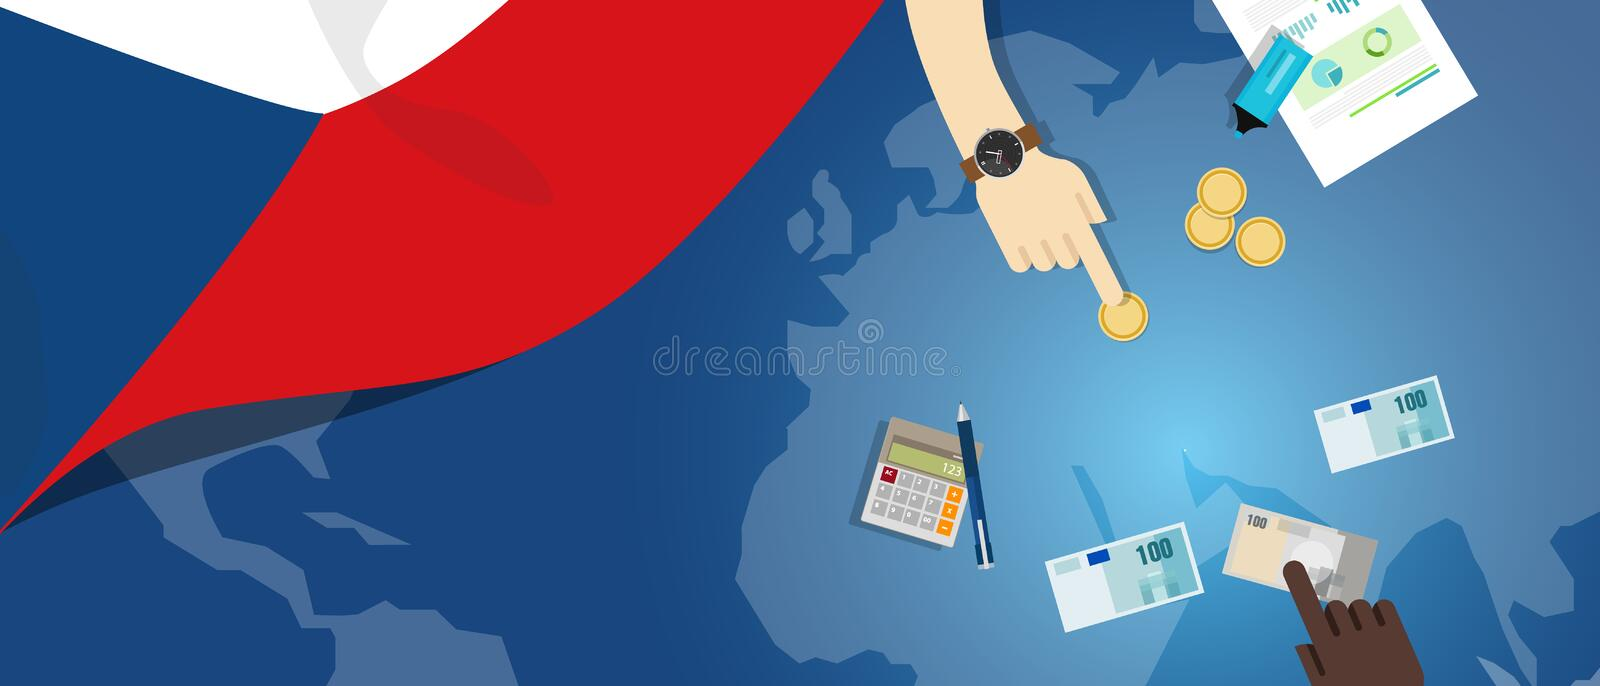 Czech republic economy fiscal money trade concept illustration of financial banking budget with flag map and currency. Vector stock illustration